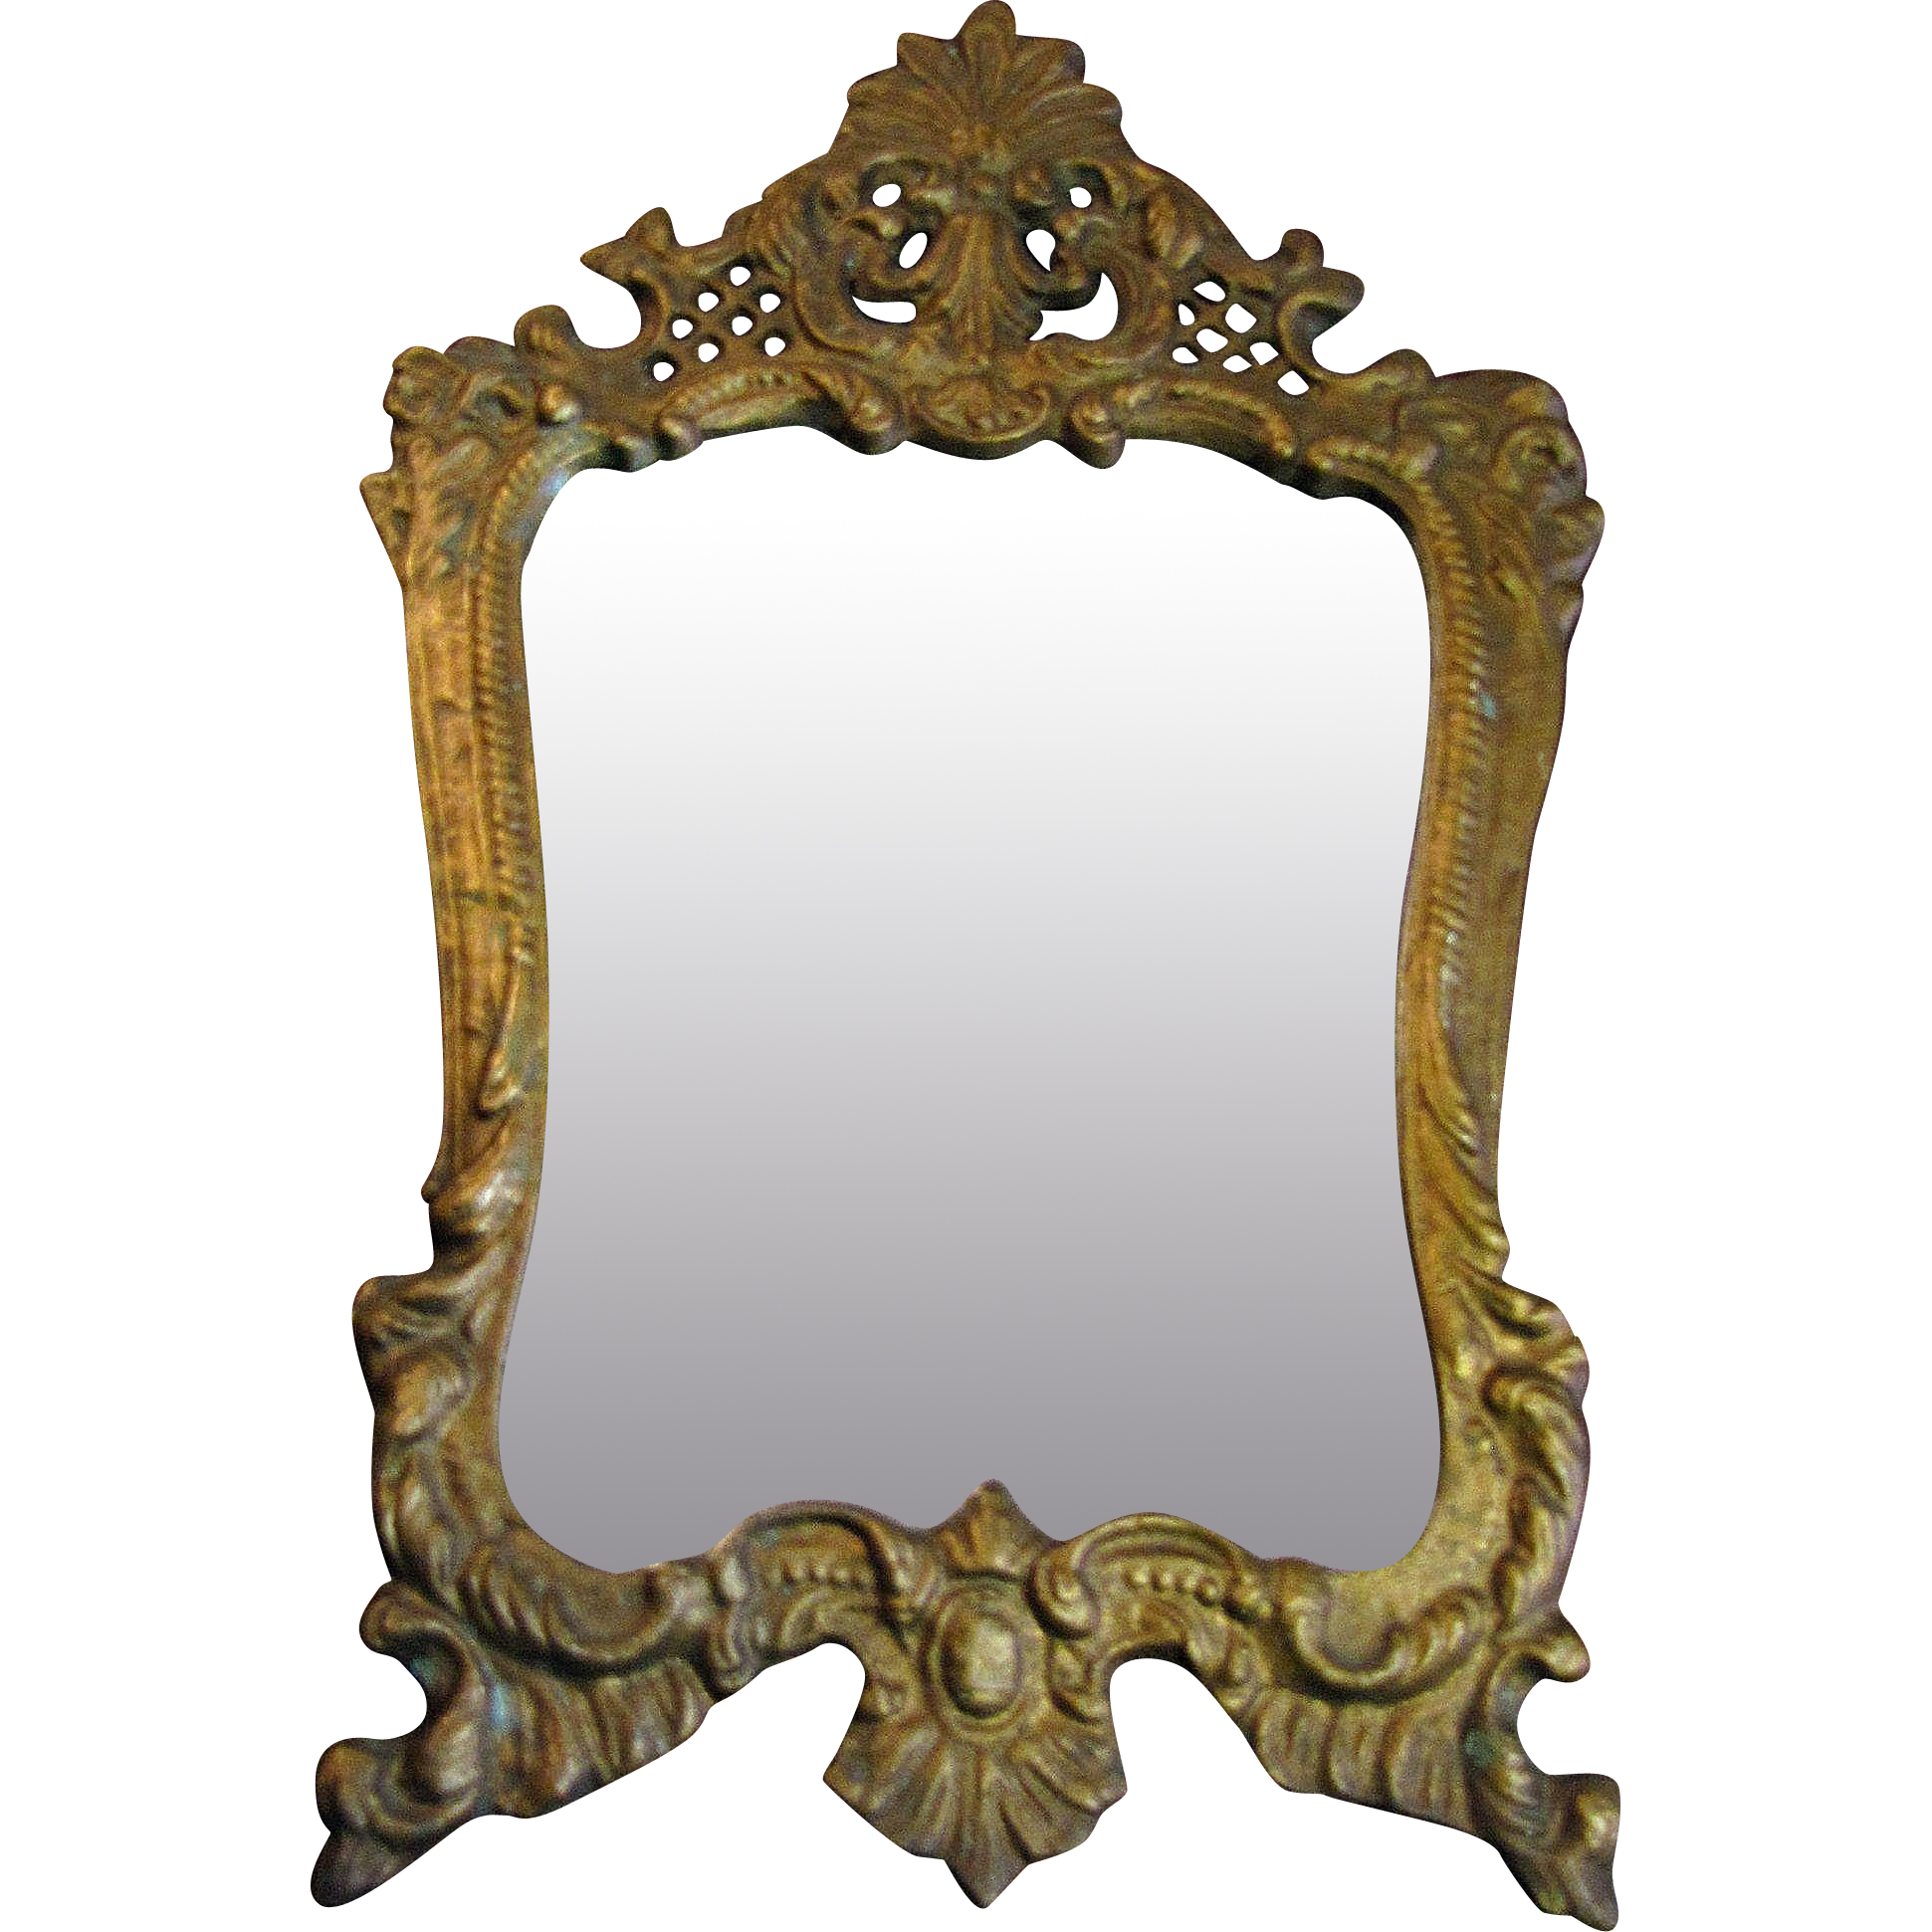 picture royalty free stock Mirror transparent victorian. Gilt ornate french rococco.